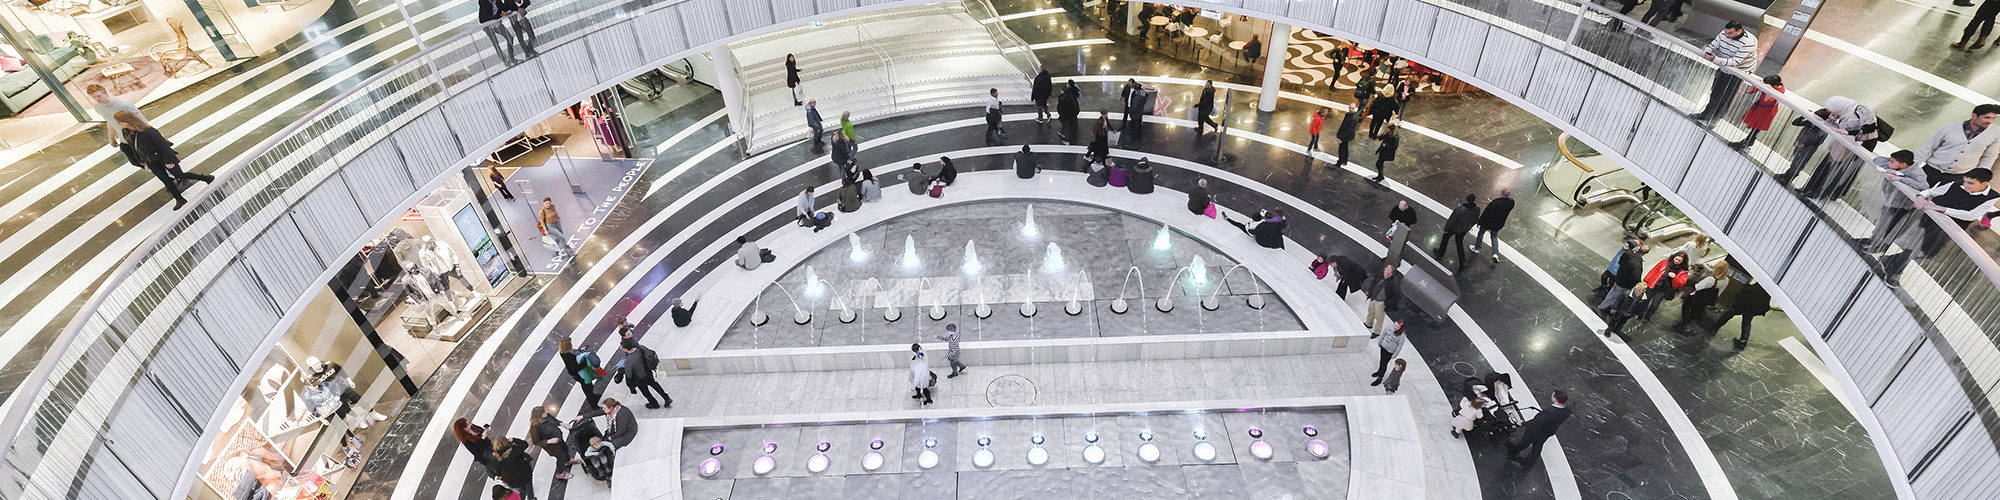 SOLNA, SWEDEN - MARCH 4, 2016: Circular interior at the Mall of Scandinavia in Solna. 2015 was the mall opened.